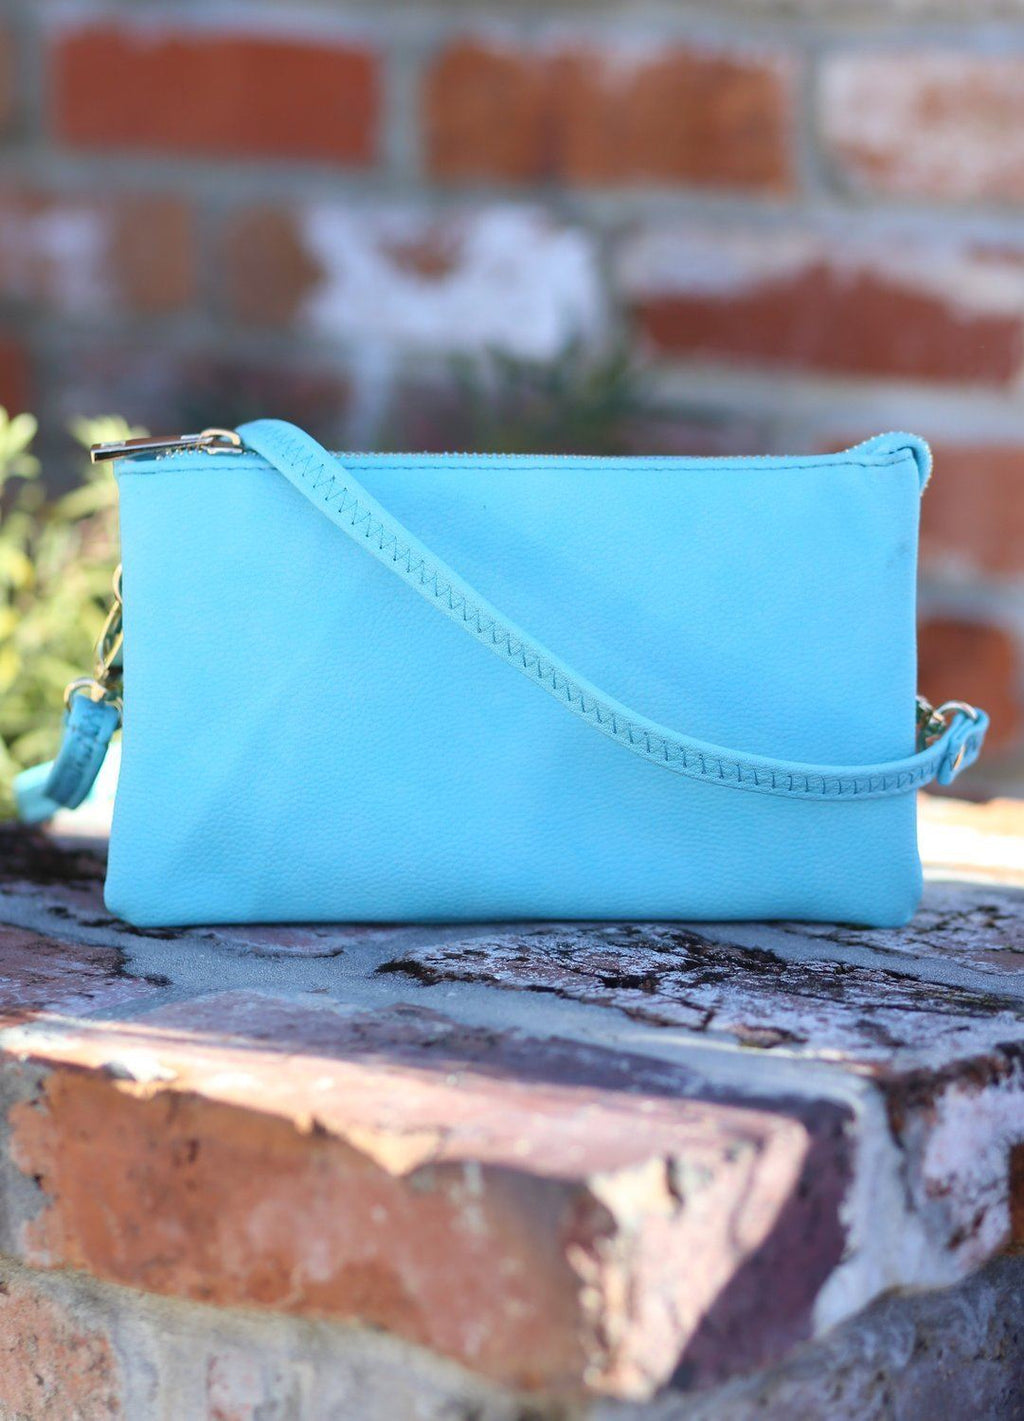 Liz Aquamarine Crossbody - Caroline Hill